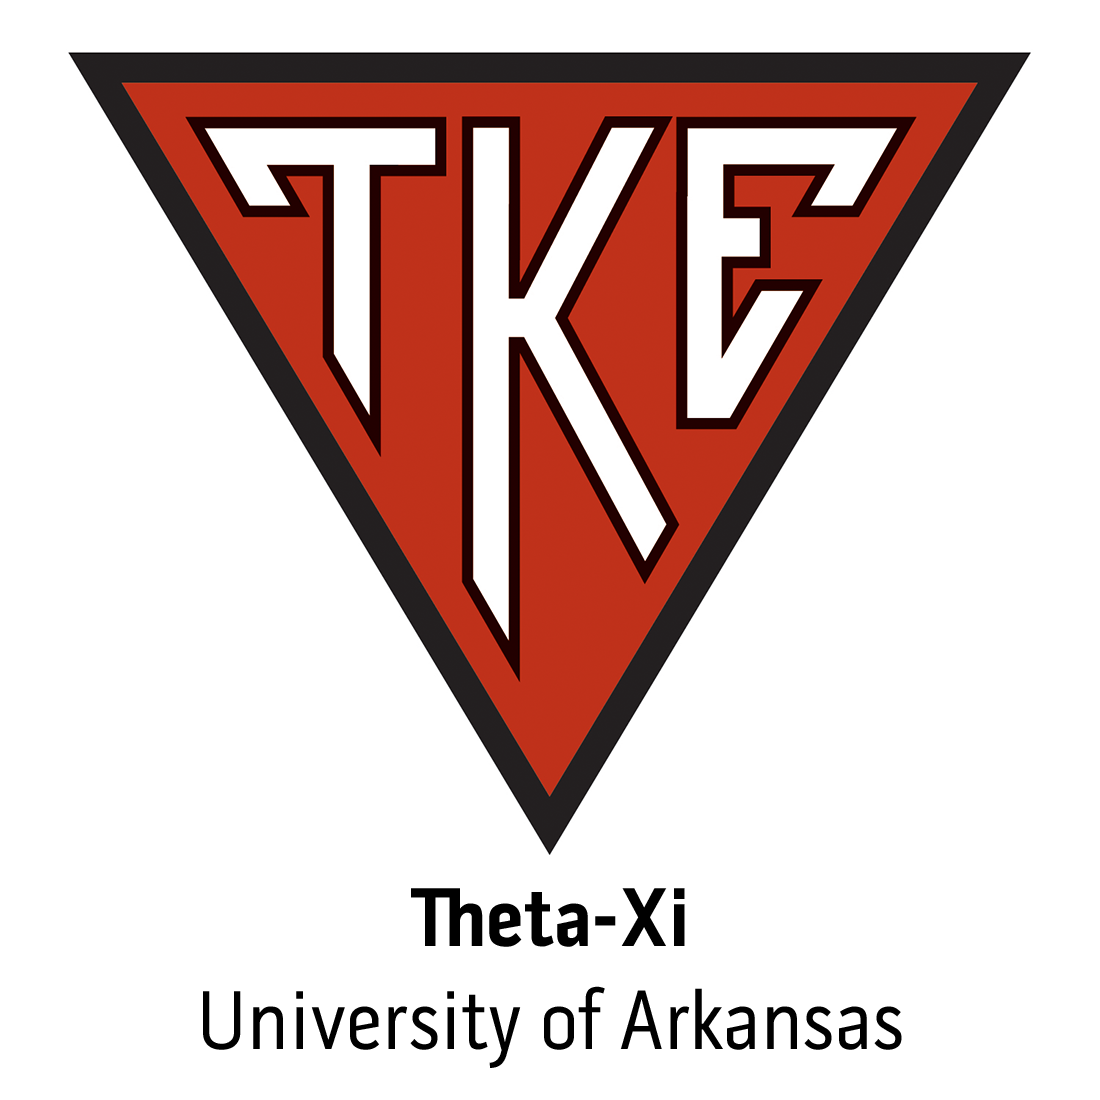 Theta-Xi Chapter at University of Arkansas